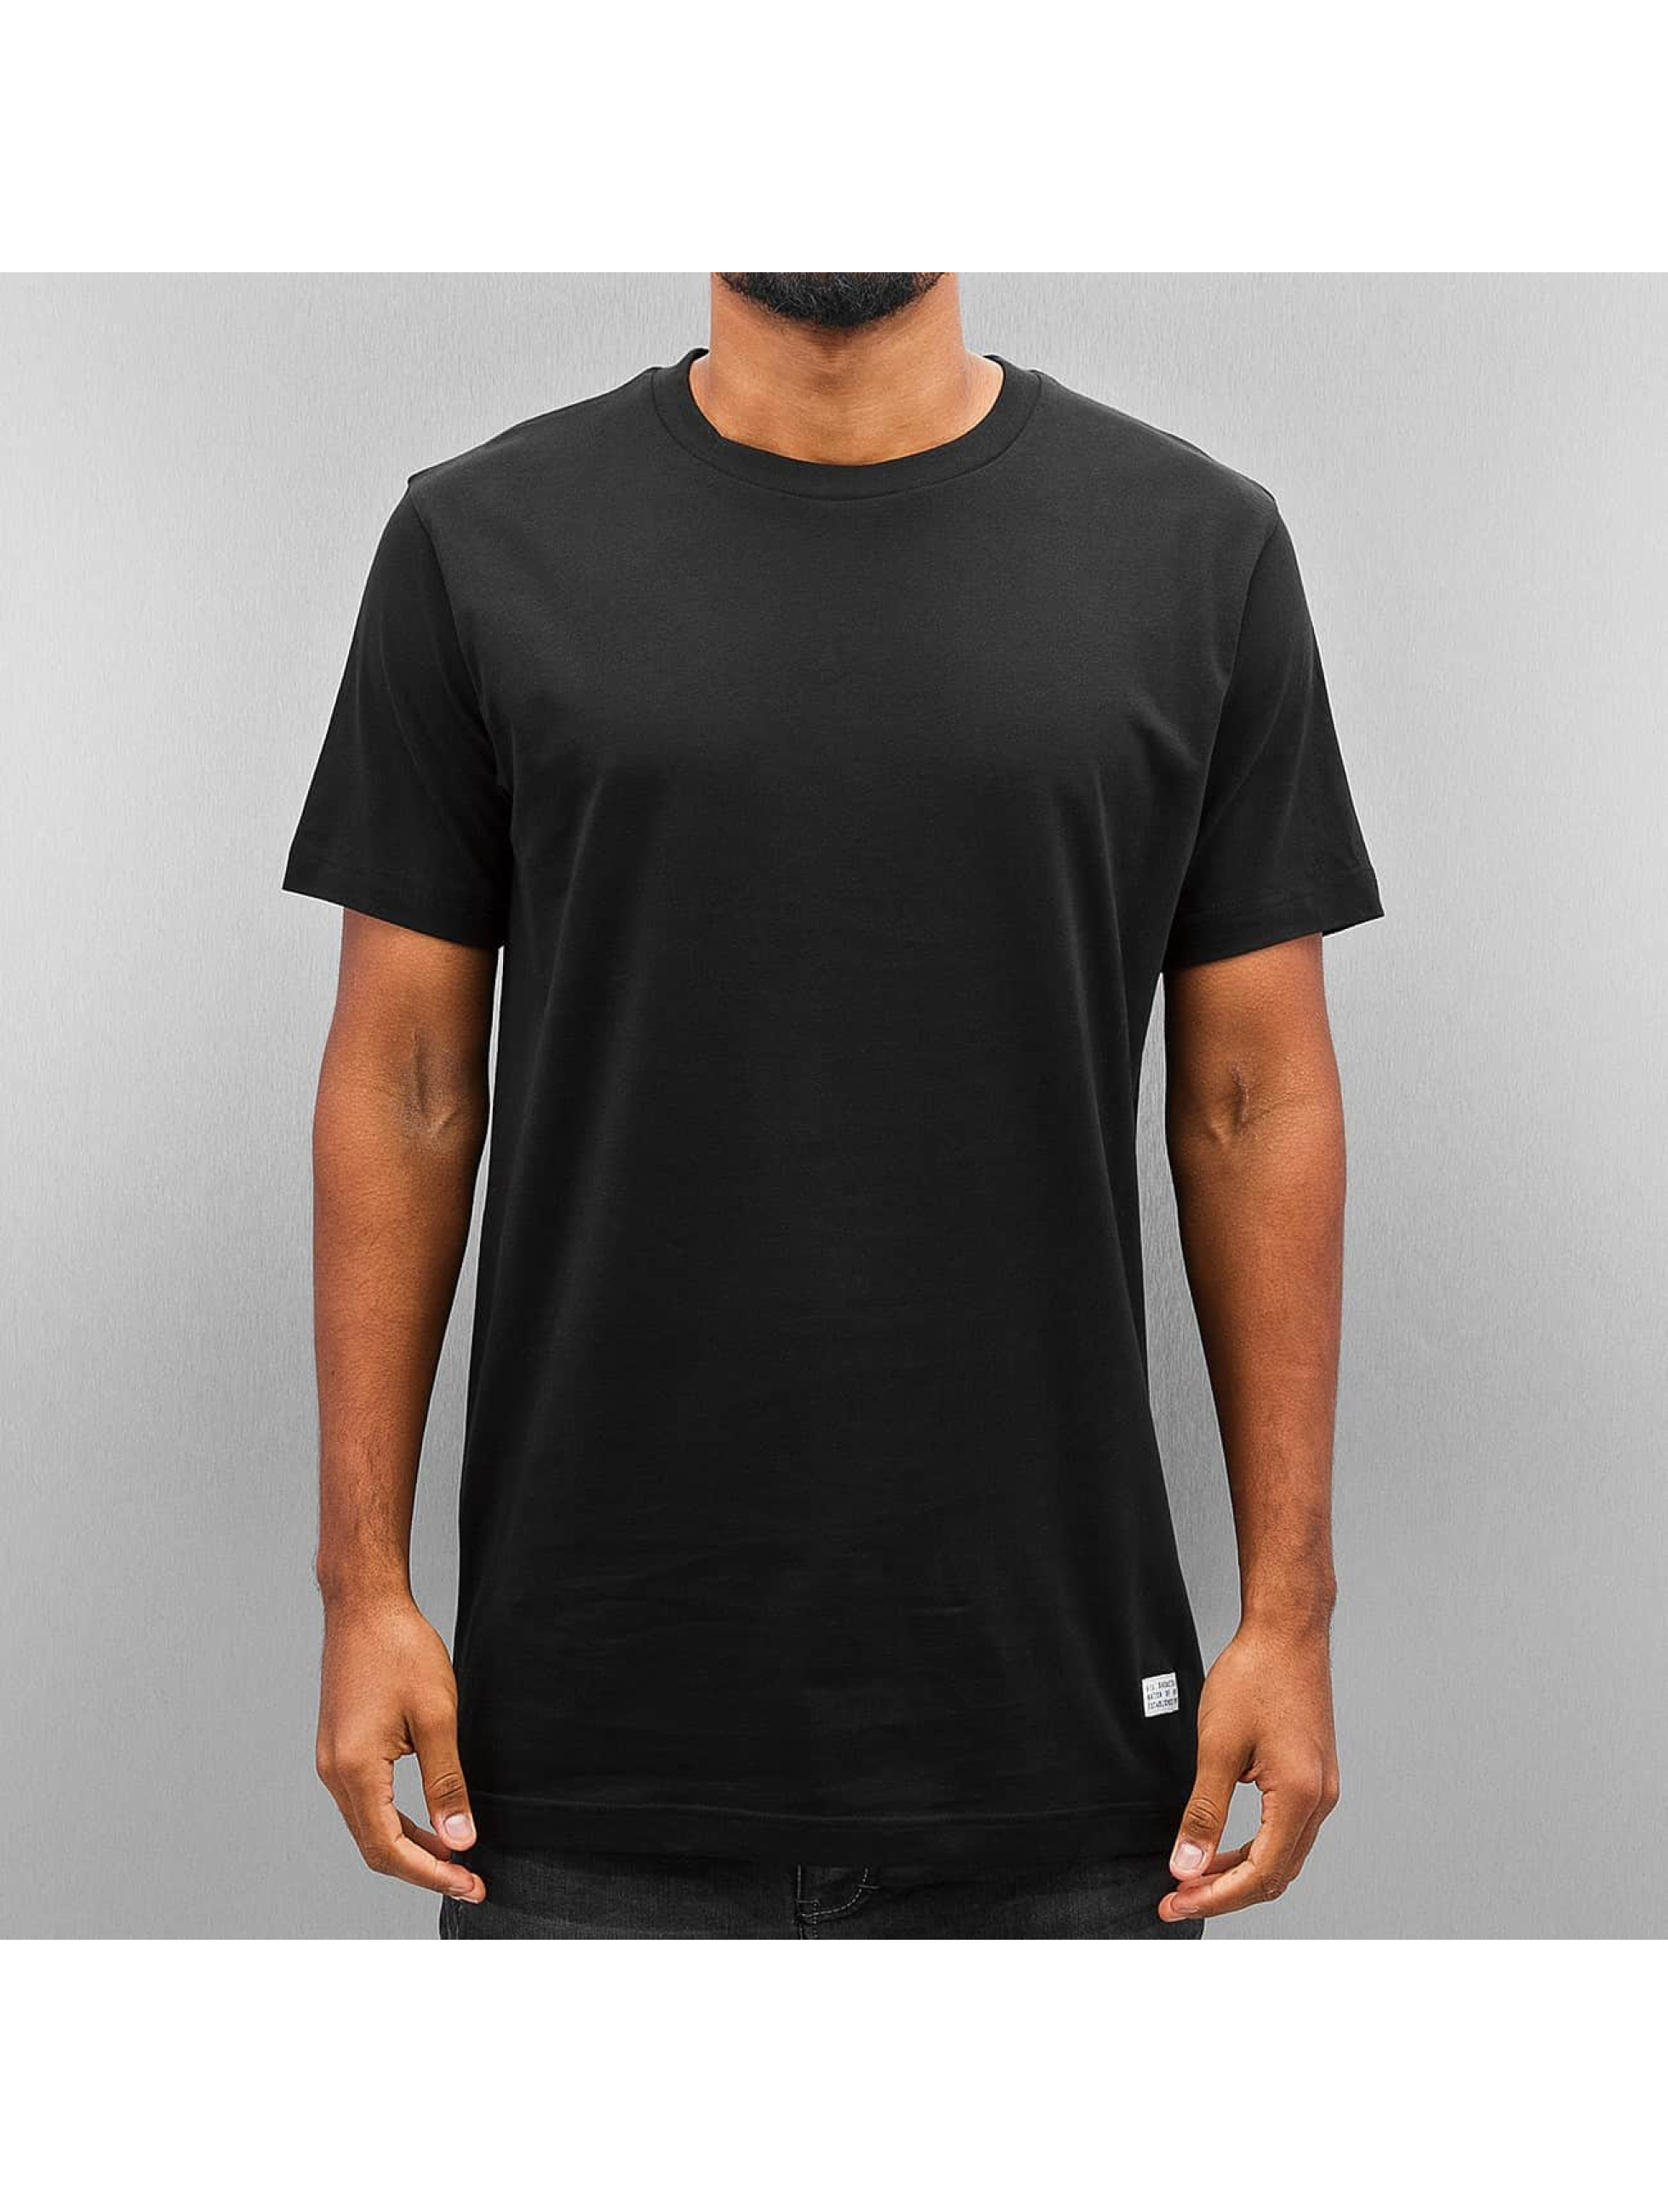 K1X T-Shirt Authentic schwarz